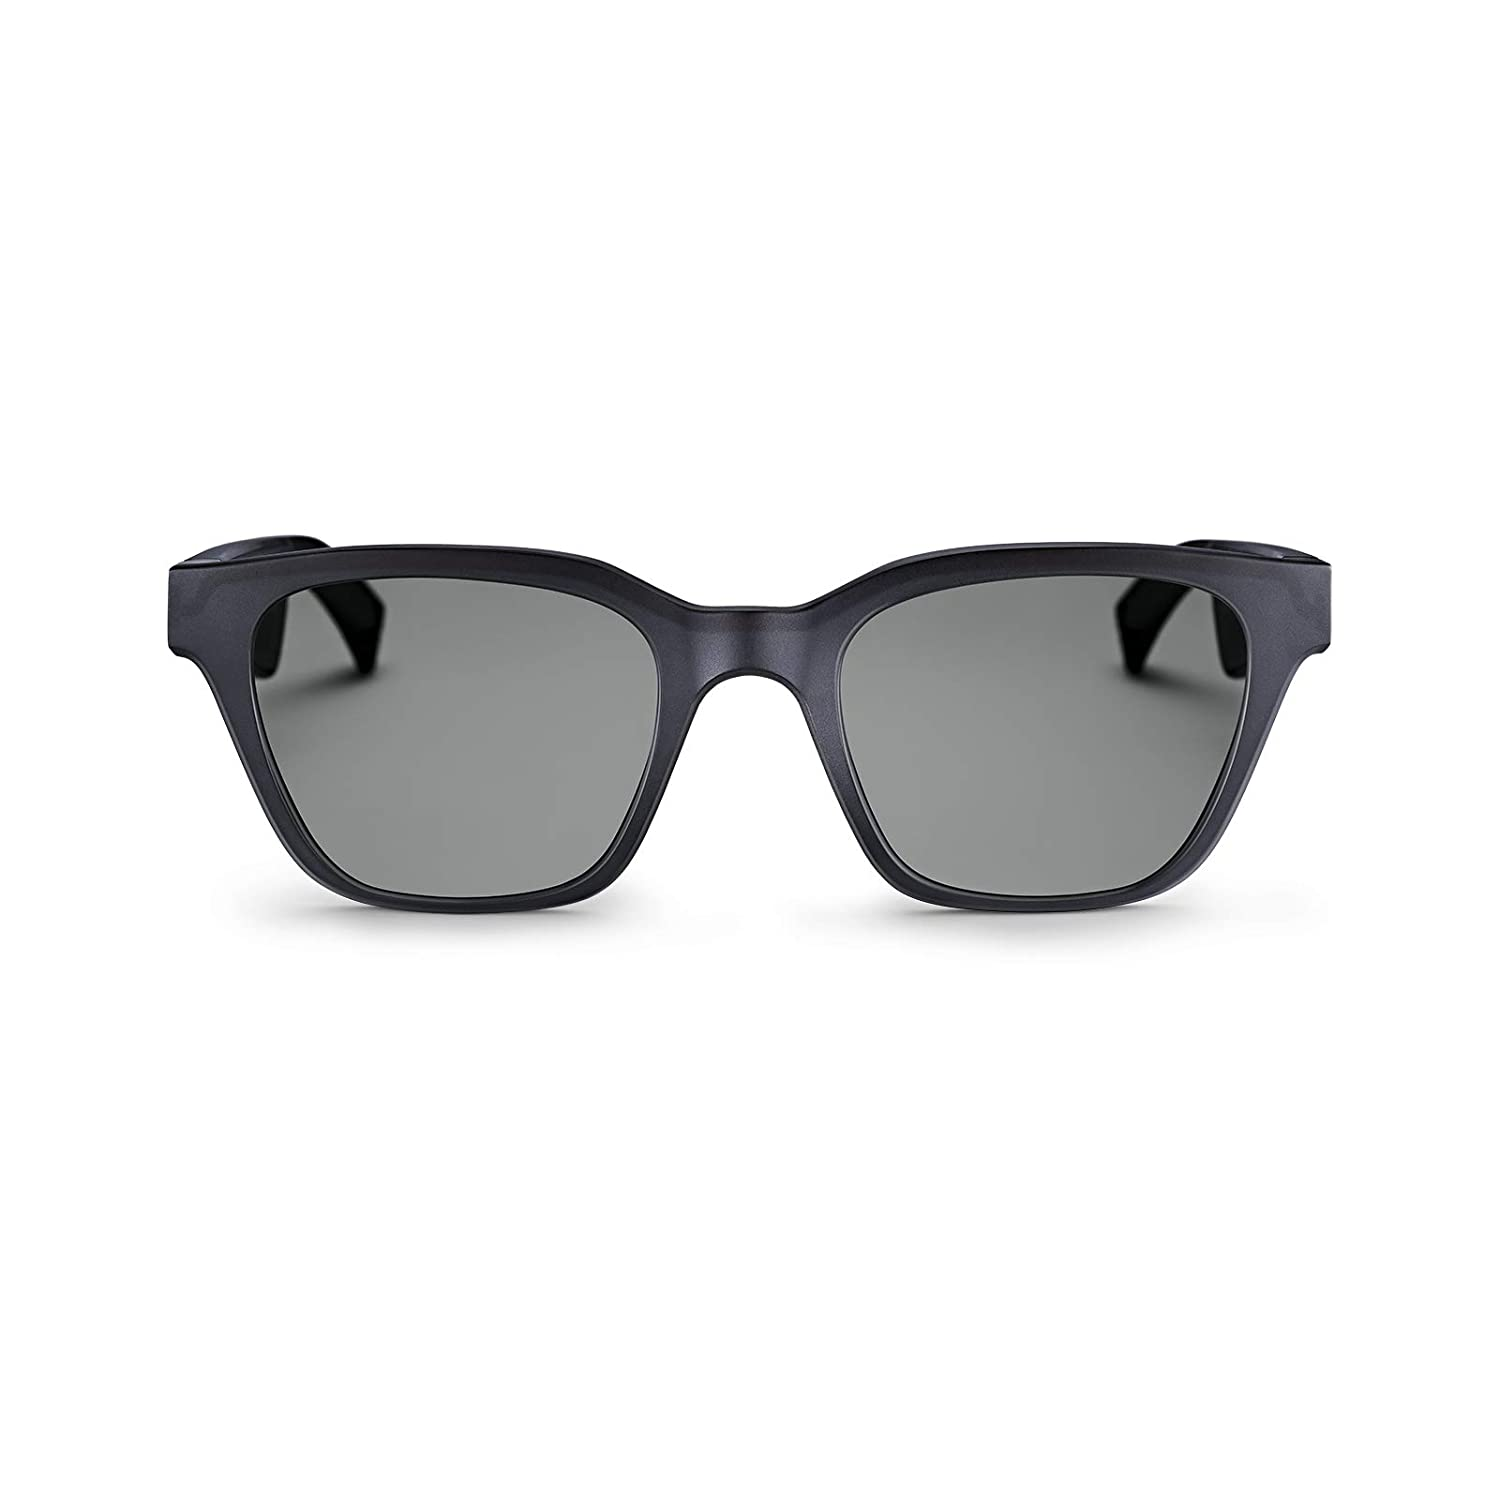 Bose Frames - Audio Sunglasses with Open Ear Headphones, Black, with Bluetooth Connectivity 61DeqqYN56L